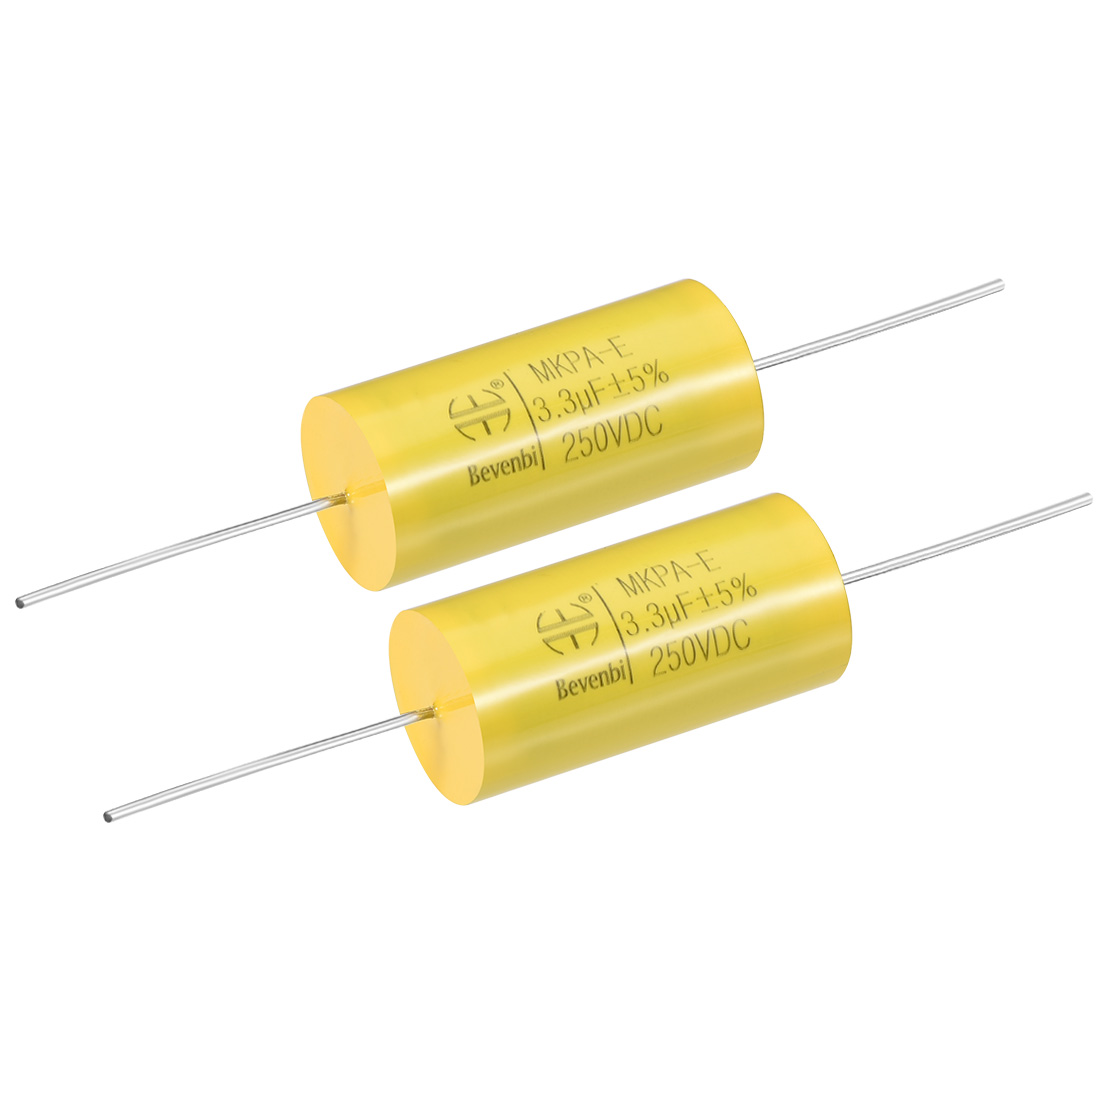 Film Capacitor 250V DC 3.3uF MKP-E Round Polypropylene Capacitors Yellow 2pcs